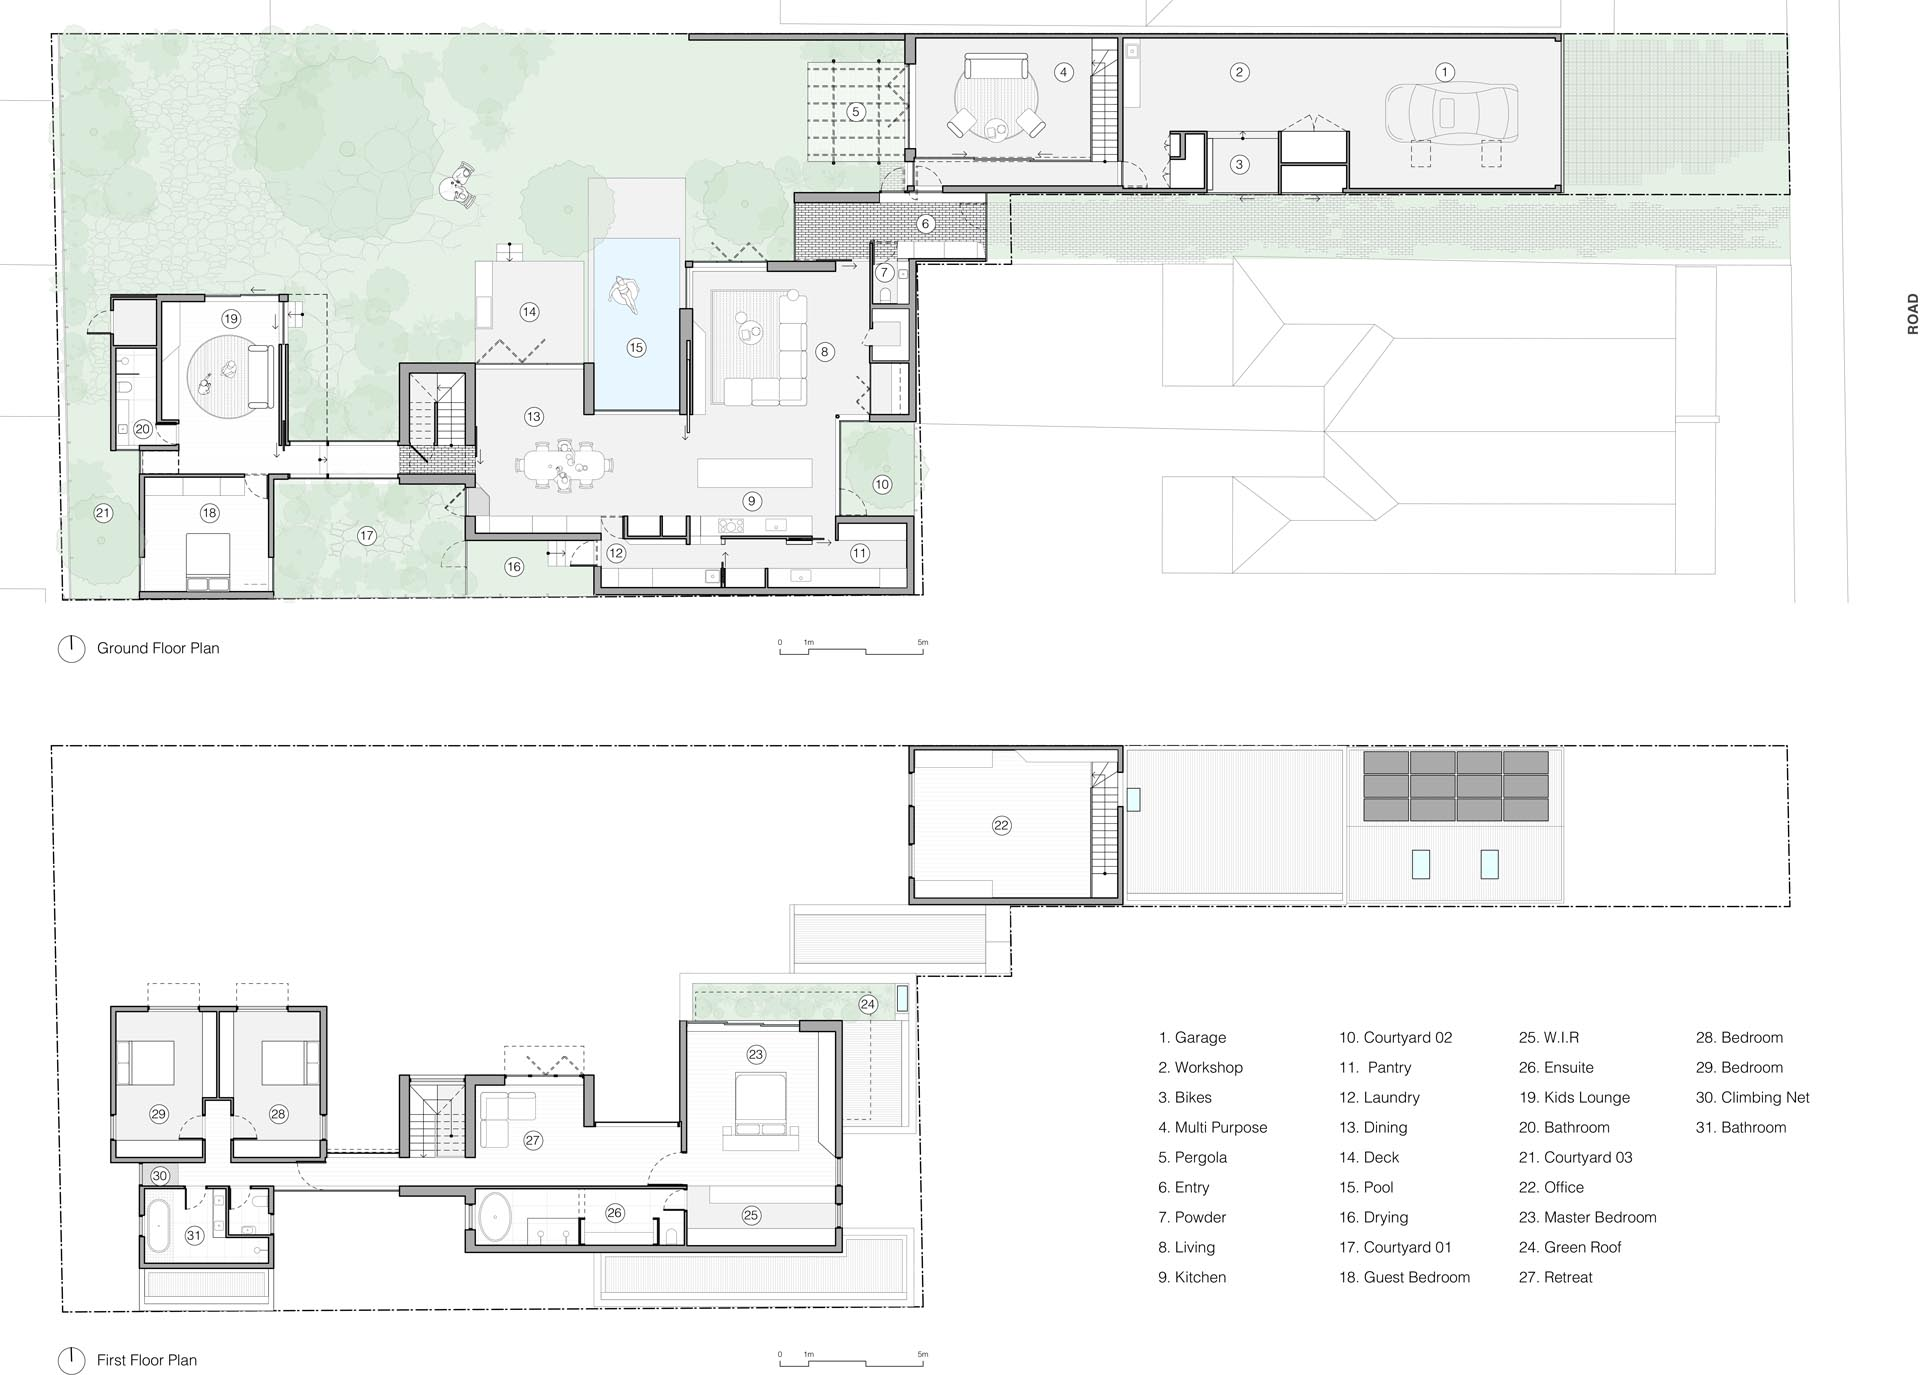 The floor plan of a modern home with plenty of outdoor spaces.